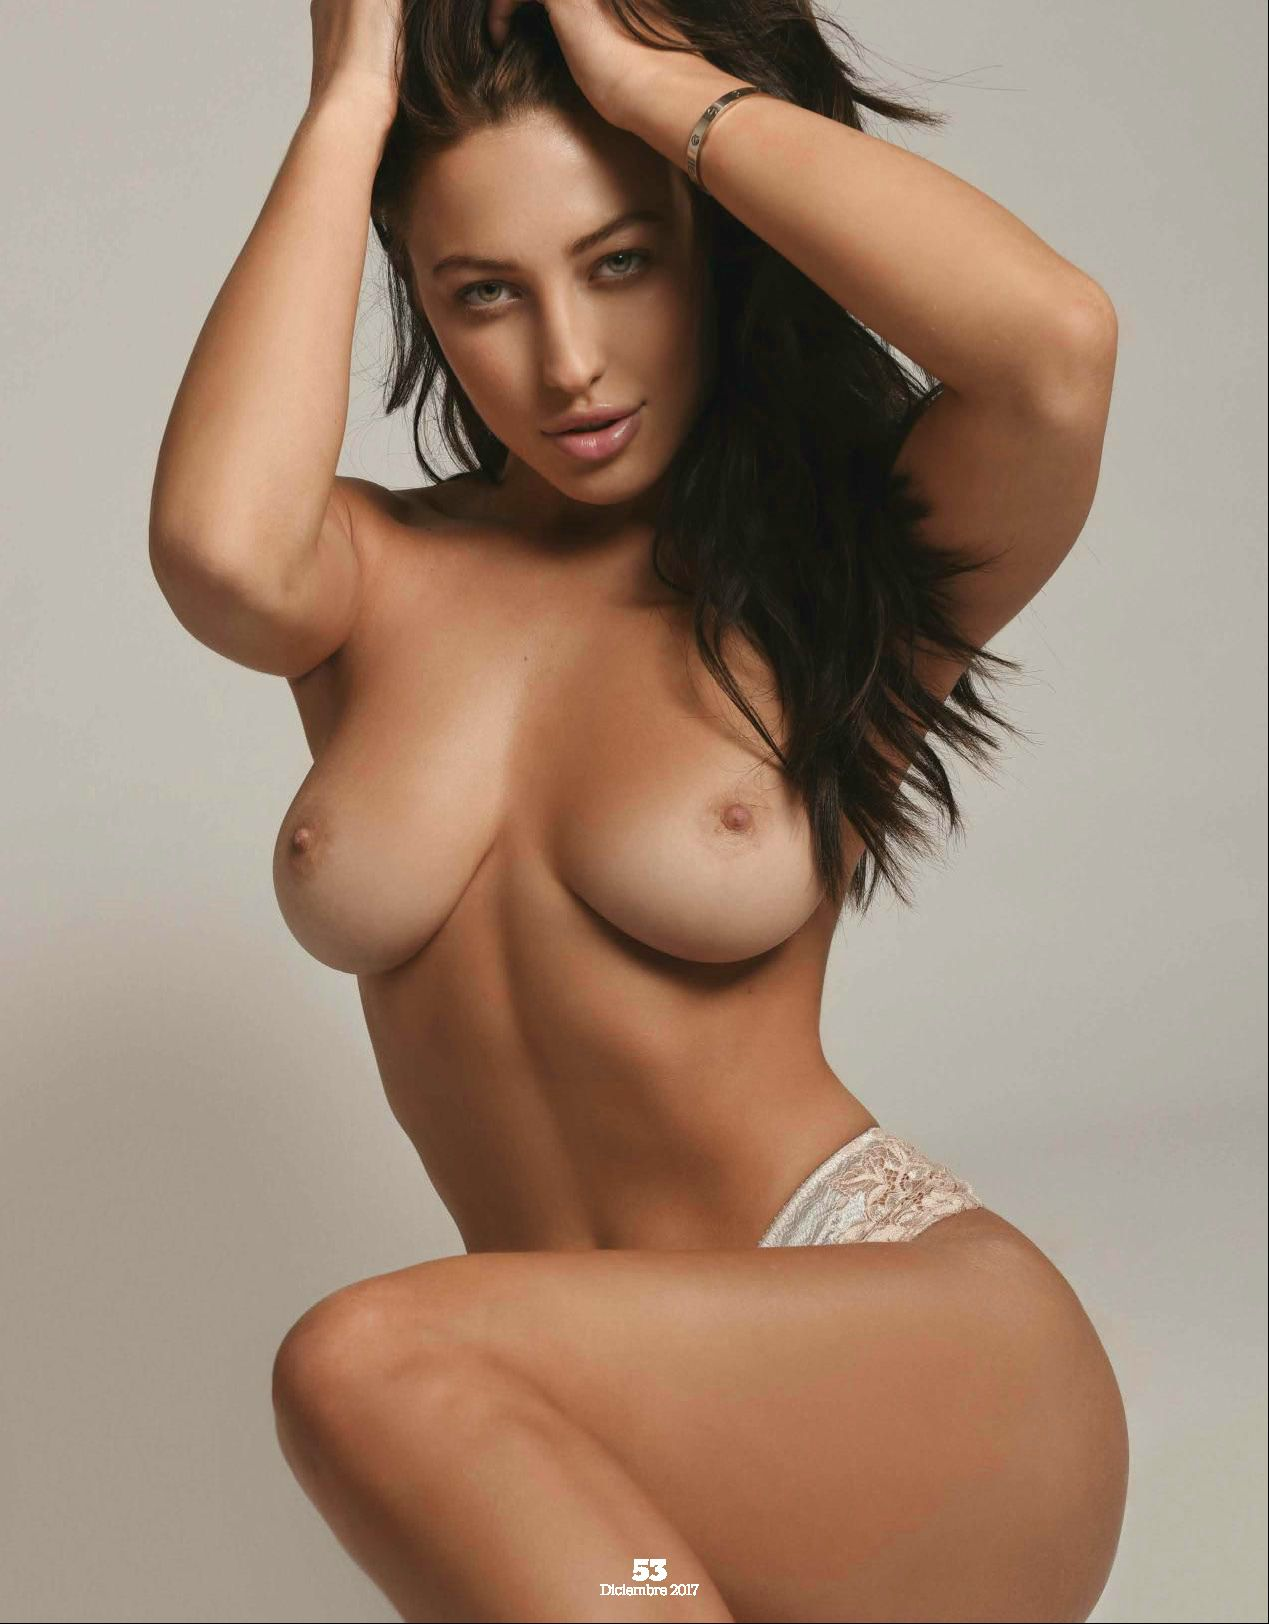 Topless Topless Stefanie Knight naked photo 2017